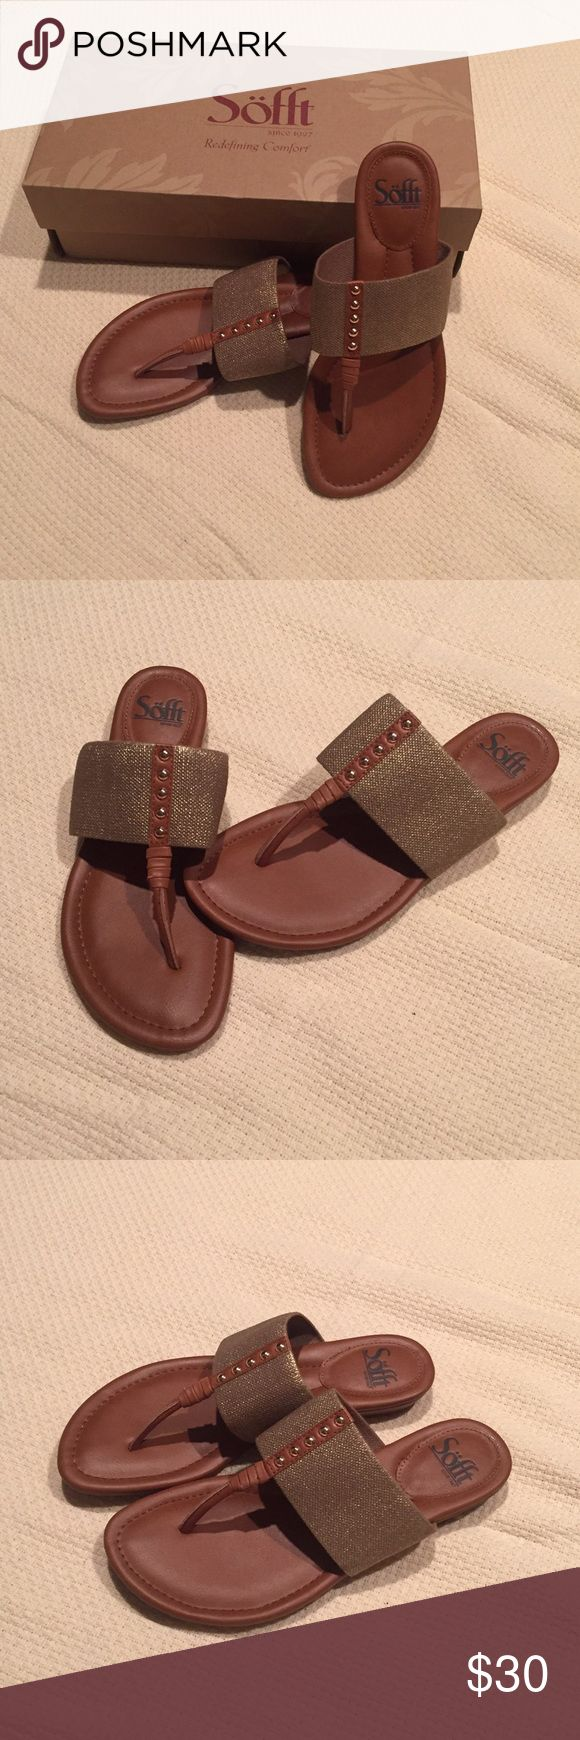 Selling this NWT Sofft shoe sandal on Poshmark! My username is: lesliemg. #shopmycloset #poshmark #fashion #shopping #style #forsale #Sofft #Shoes